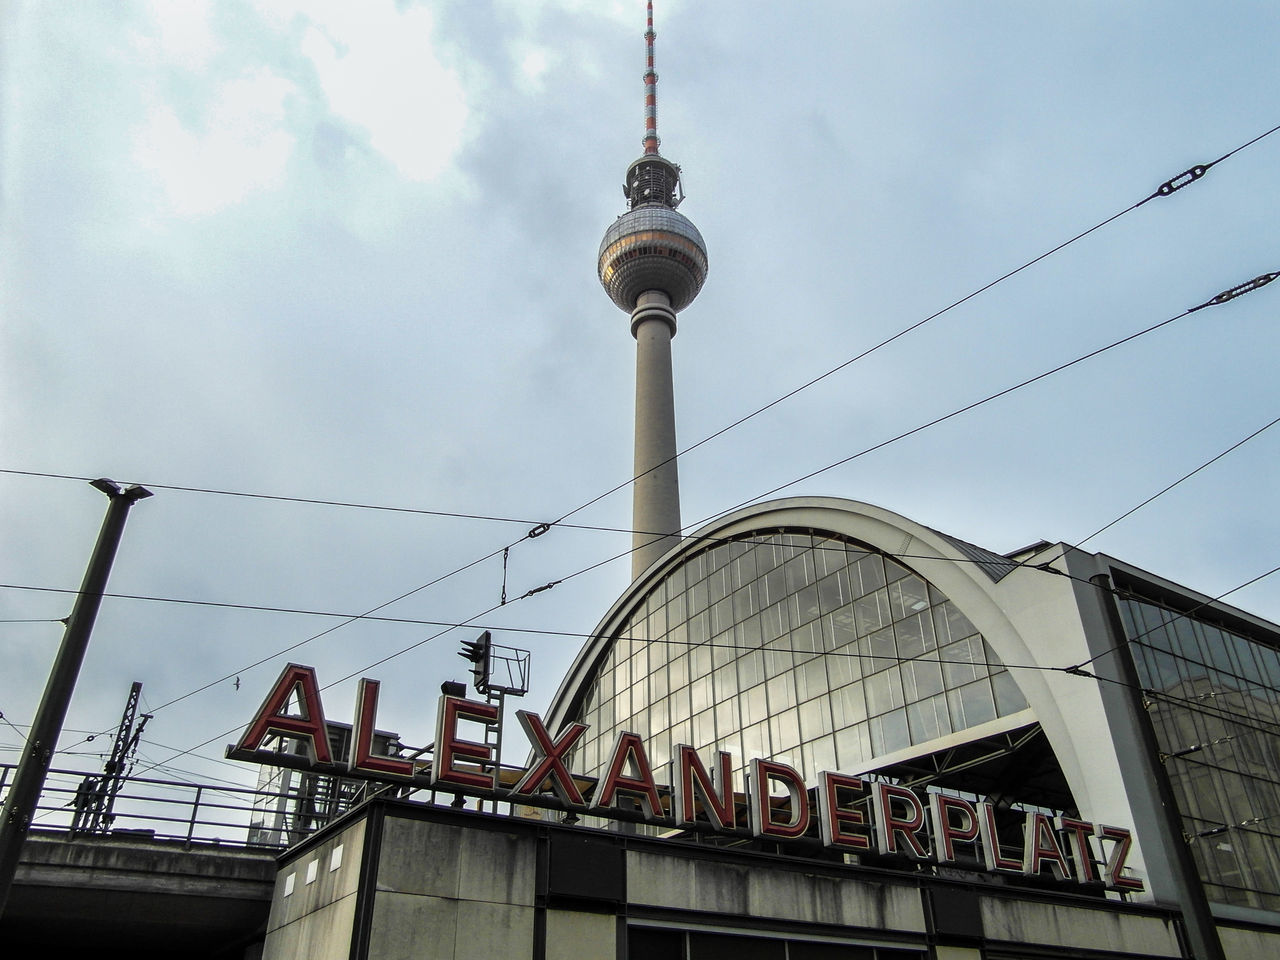 Alexanderplatz Architecture Berlin Berlin Photography Building Exterior Built Structure Capital Cities  City Cloud - Sky Day Dome Germany Low Angle View No People Outdoors Sky Station Tourism Tower Travel Travel Destinations TV Tower